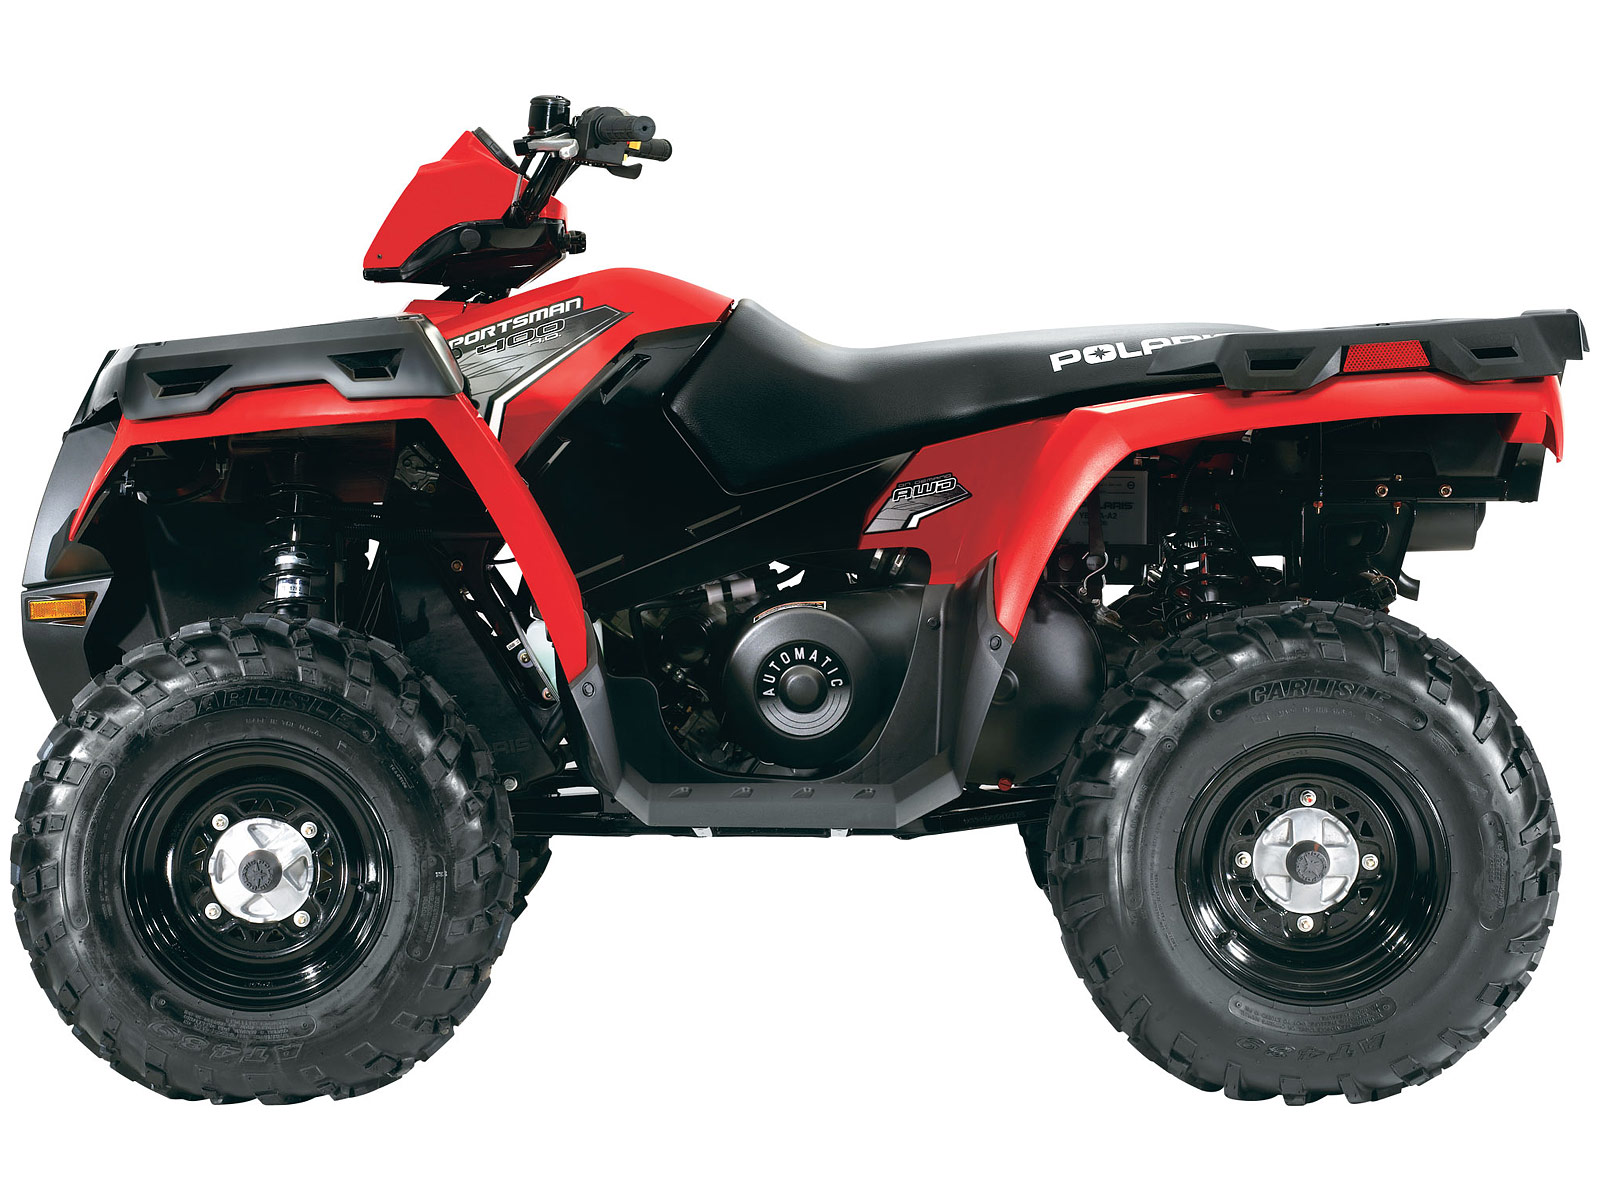 2012 polaris sportsman 400ho atv insurance information. Black Bedroom Furniture Sets. Home Design Ideas